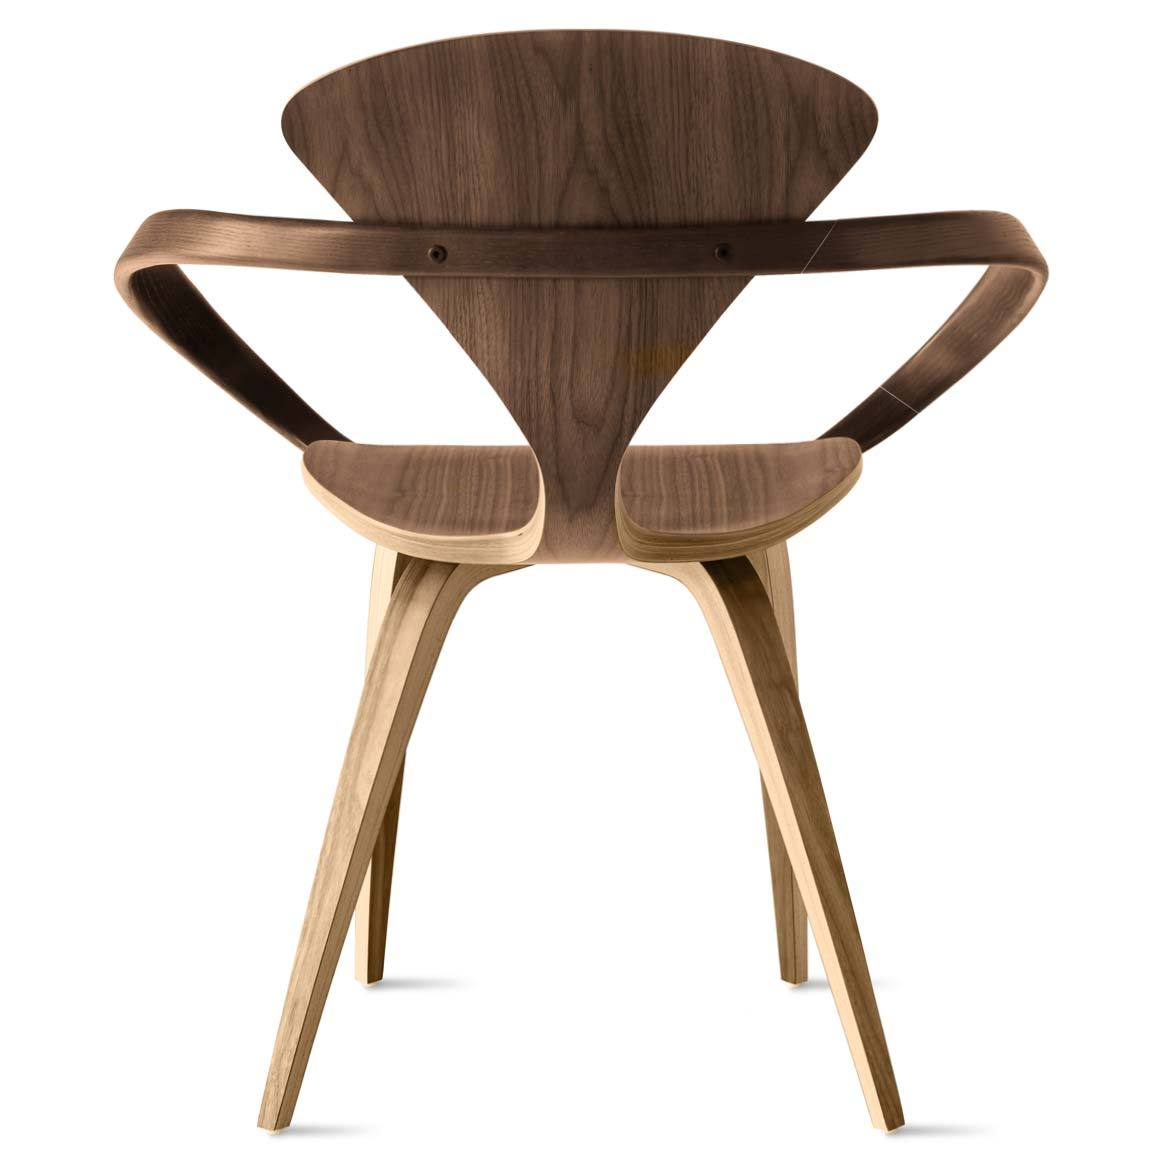 cac06-cherner-armchair-natural-walnut-rear-view-1160px_a9d85daf-5c93-448b-9f03-f16d81e4c709_3840x